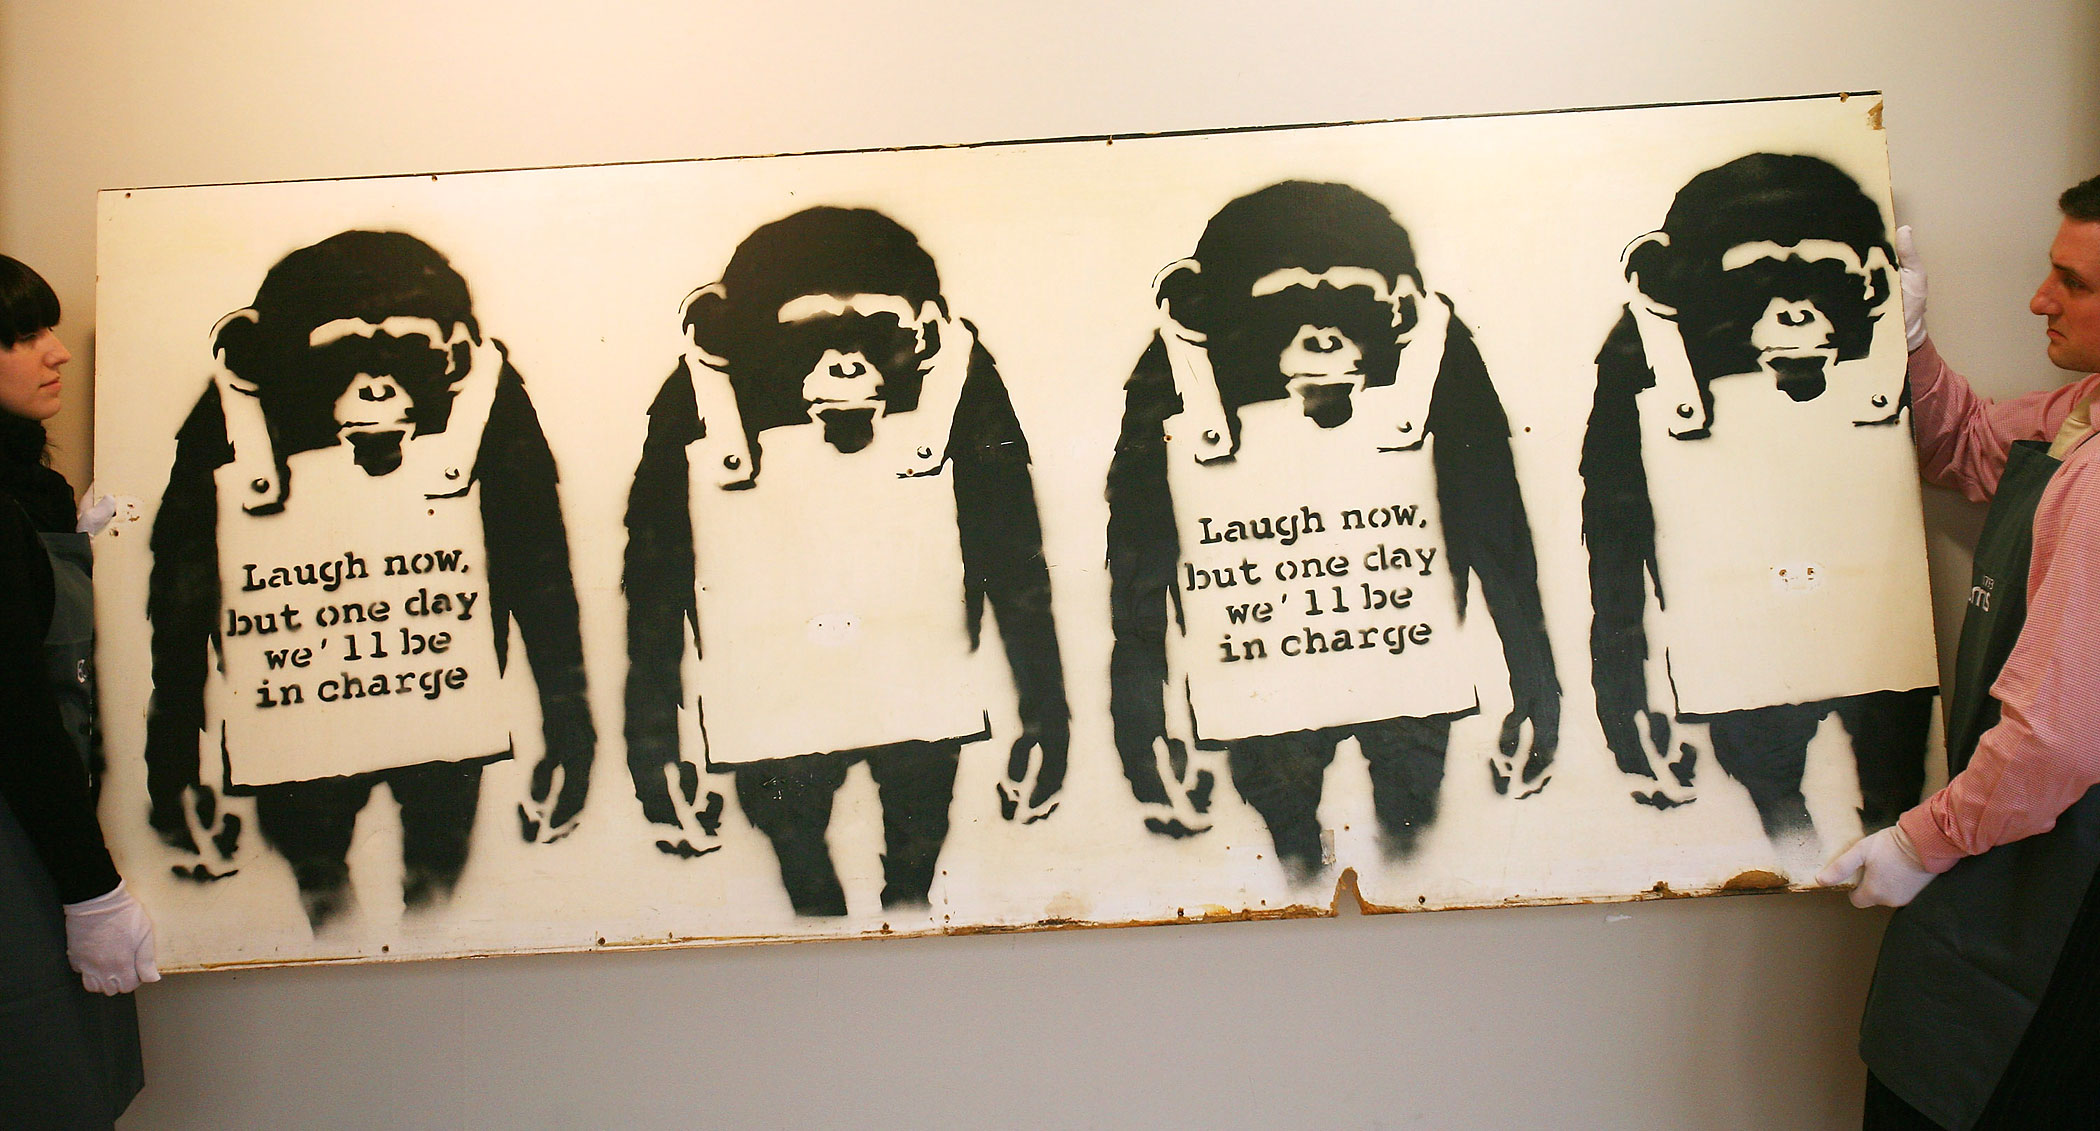 Banksy's Laugh Now is held by a Bonham's employee's during a viewing for the World's First Urban Art Auction at Bonham's on January 22, 2008 in London, England.